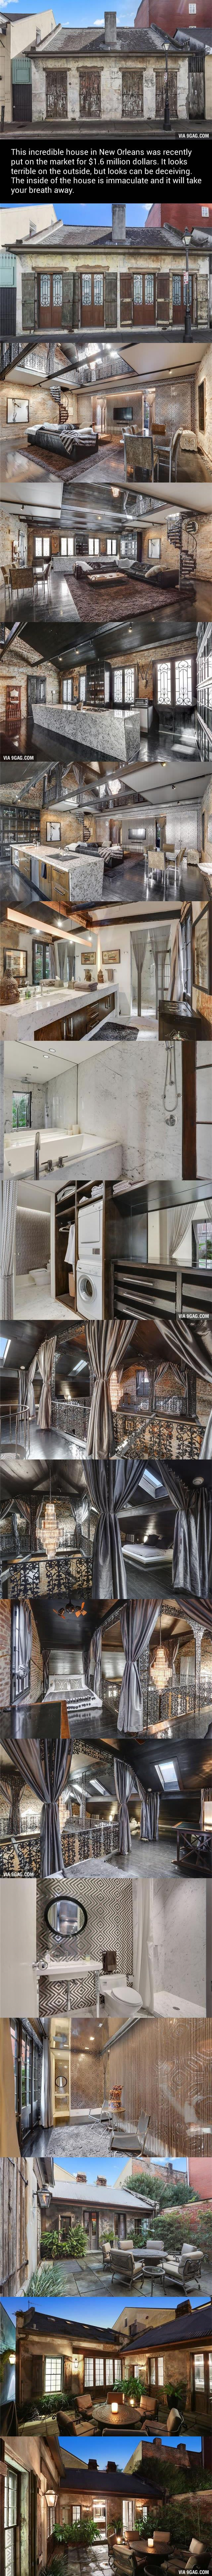 This 200-Year-Old House May Look Rough, But The Incredible Inside Is Worth $1.6 million - 9GAG